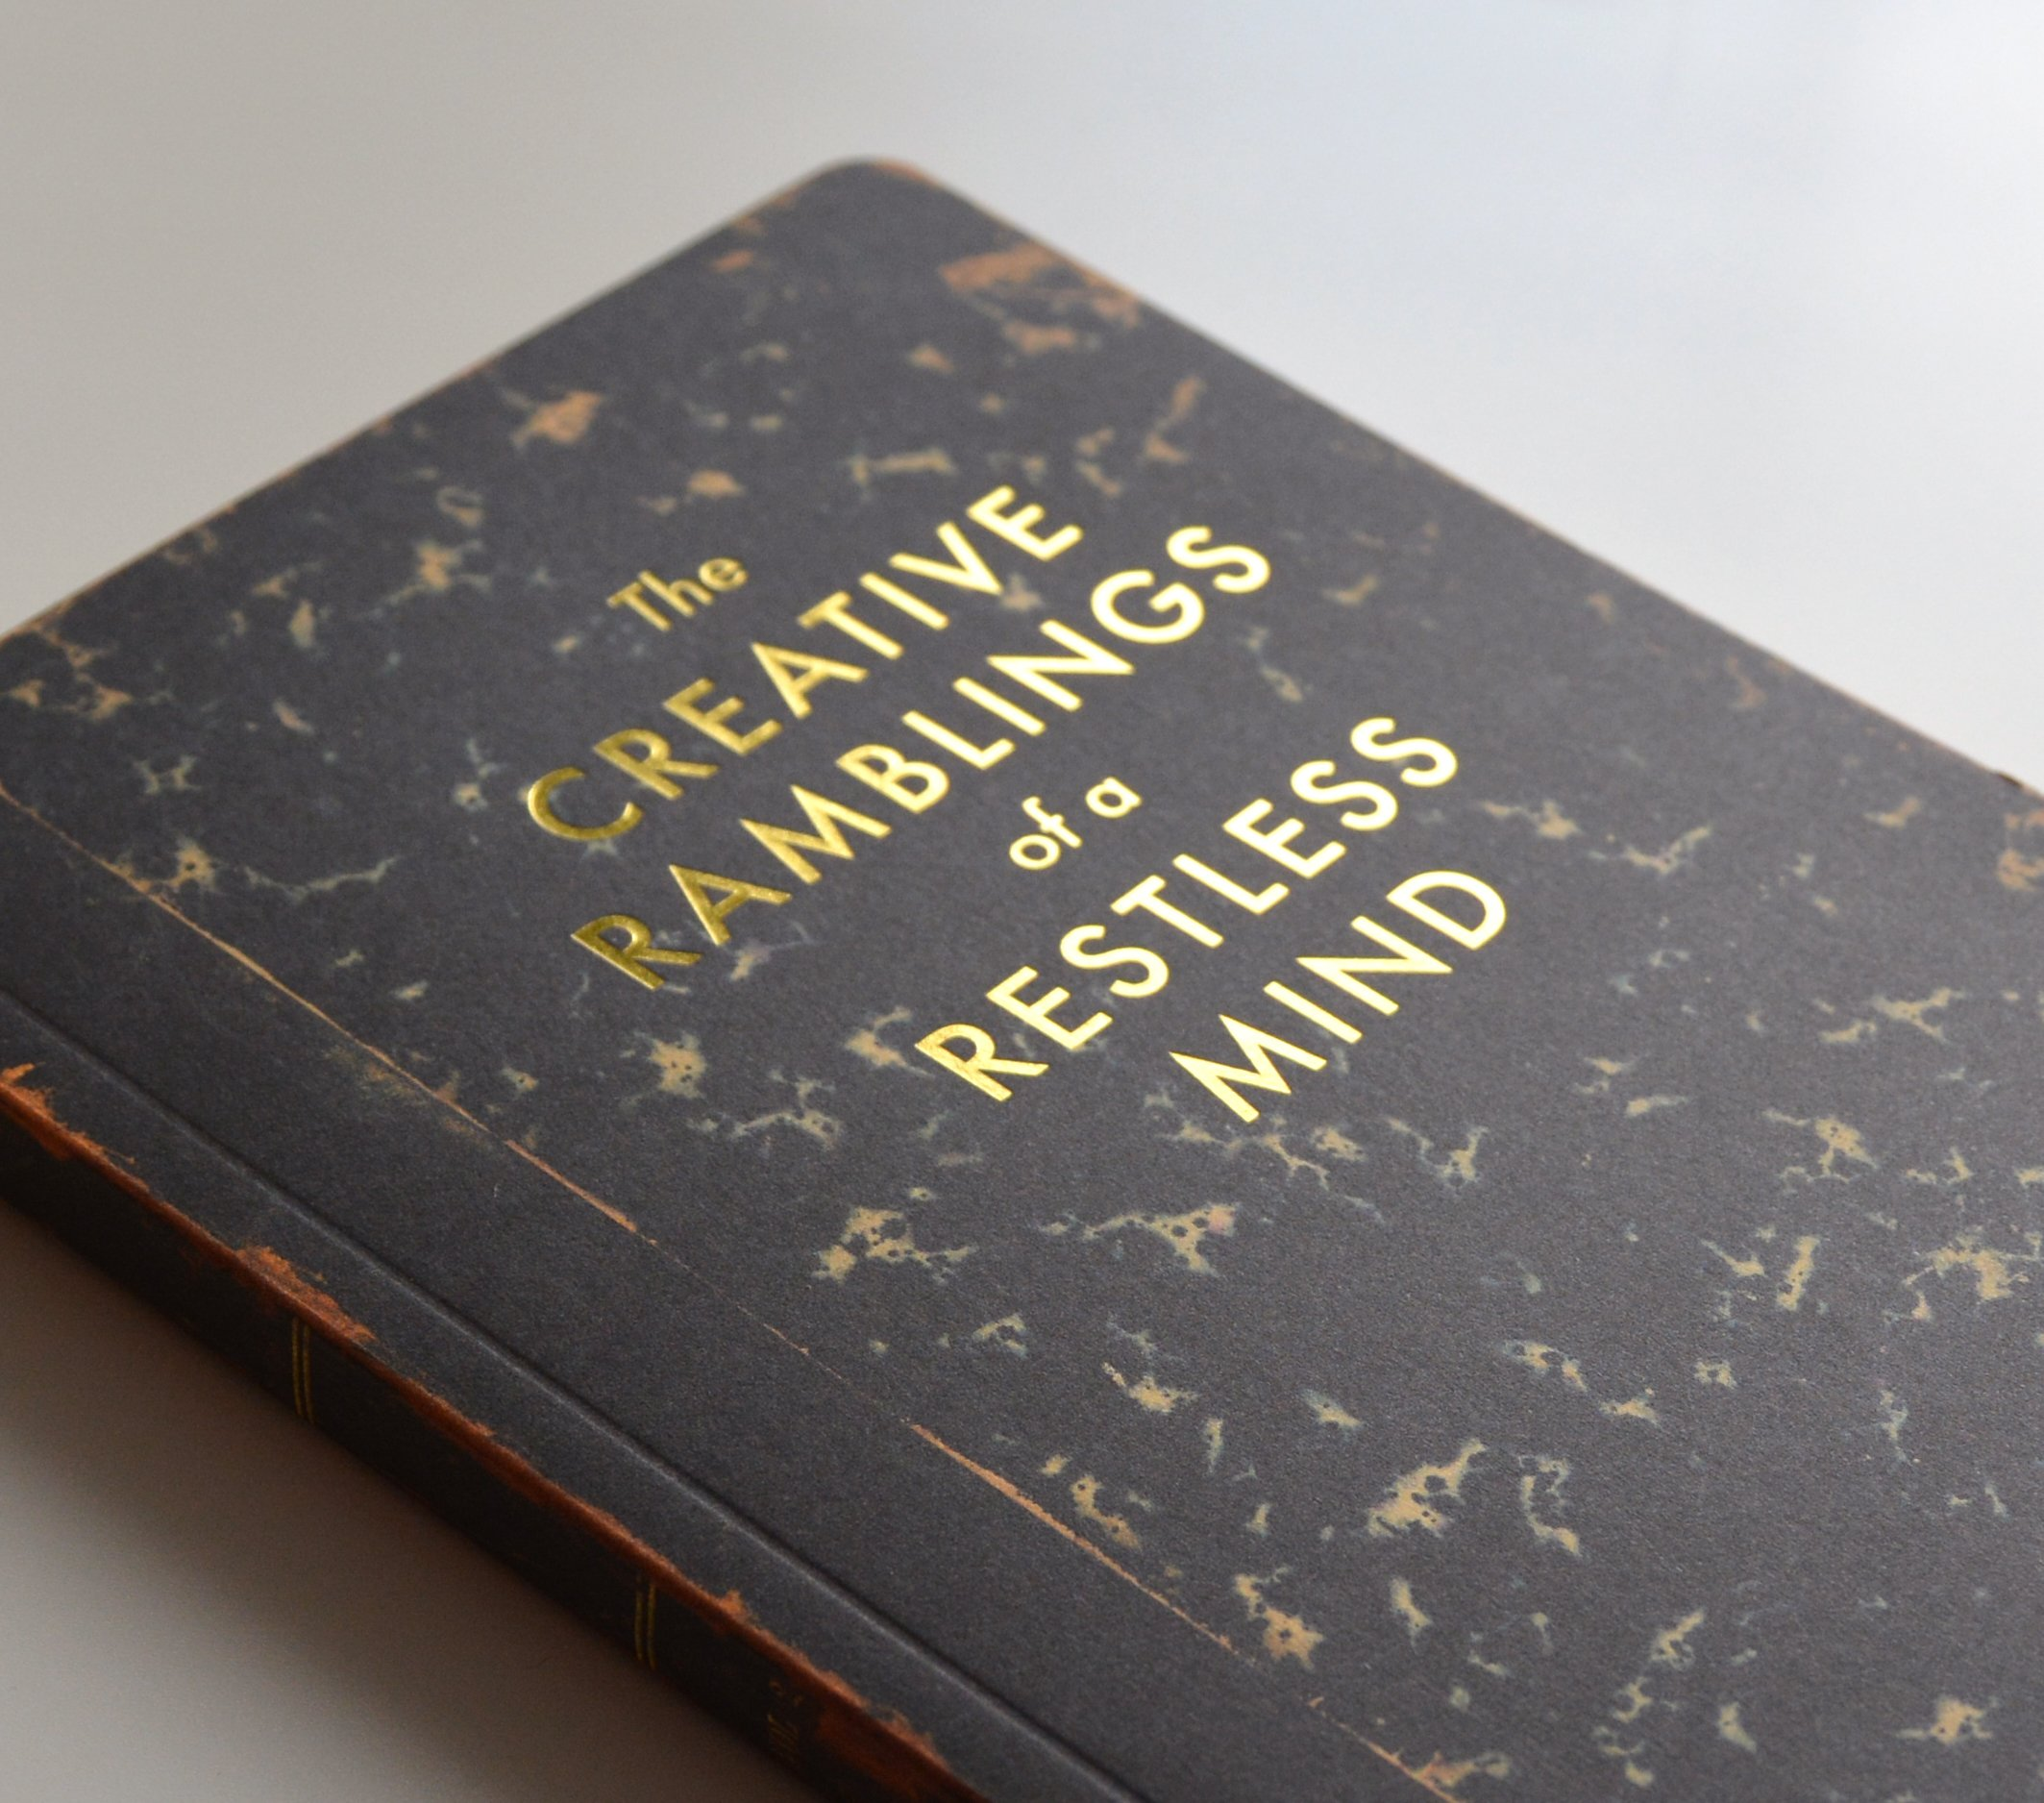 22ec416a64 The Creative Ramblings of a Restless Mind Journal  Kim Bagwill   9780615922997  Amazon.com  Books